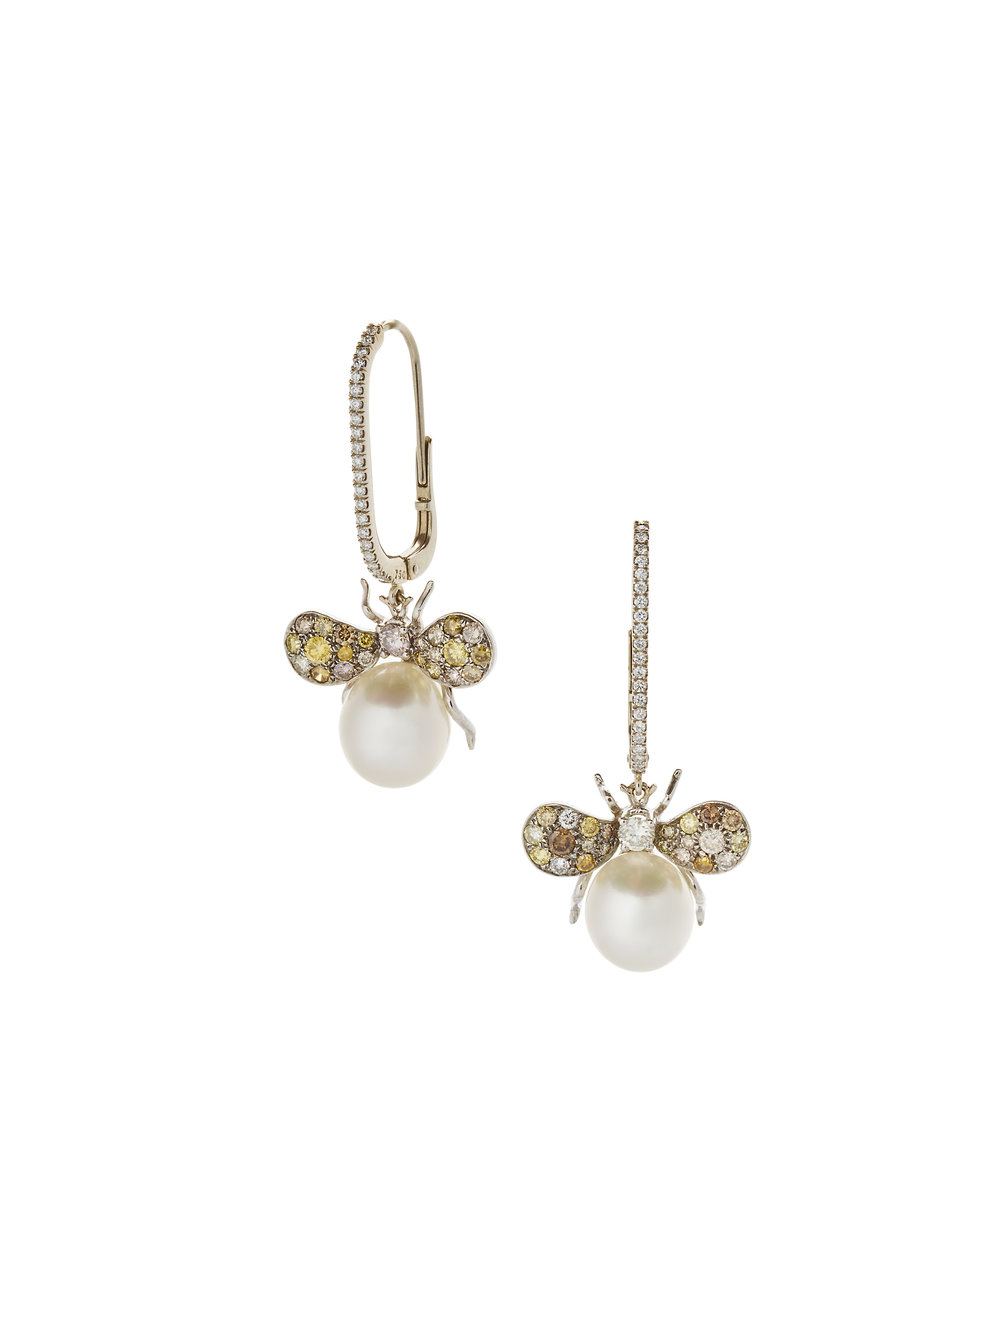 SAYURI BUGS EARRINGS    18 K GOLD SOUTH SEA PEARLS 2.2 CT OF DIAMONDS      Contact for inquiry